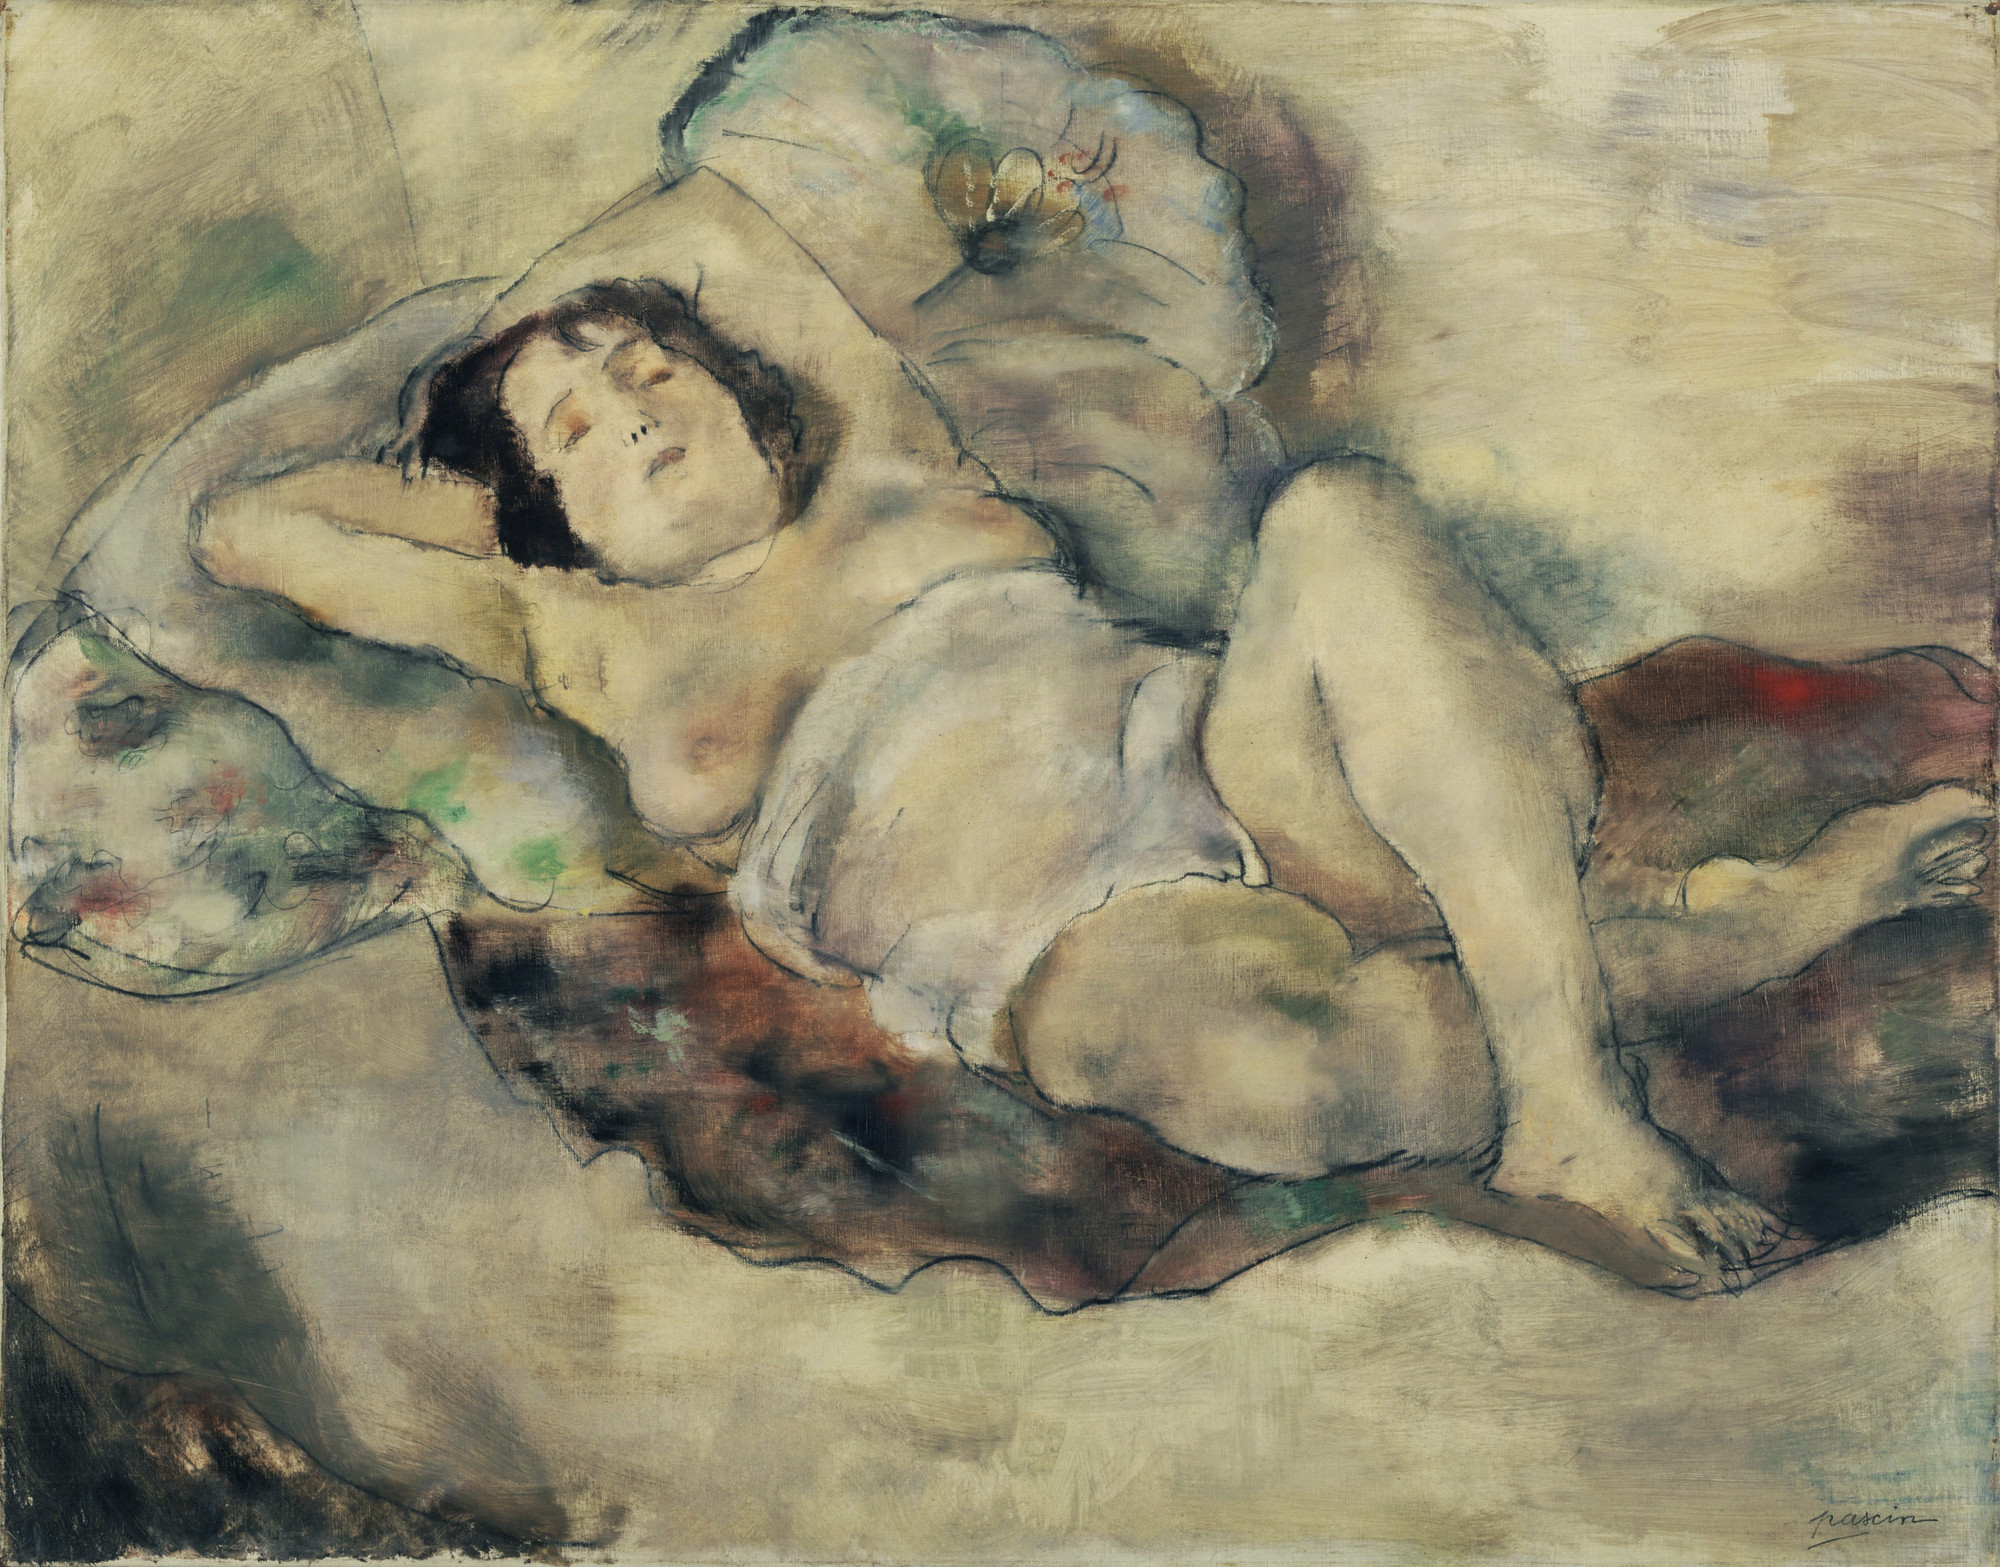 Jules Pascin. Reclining Model. c. 1925